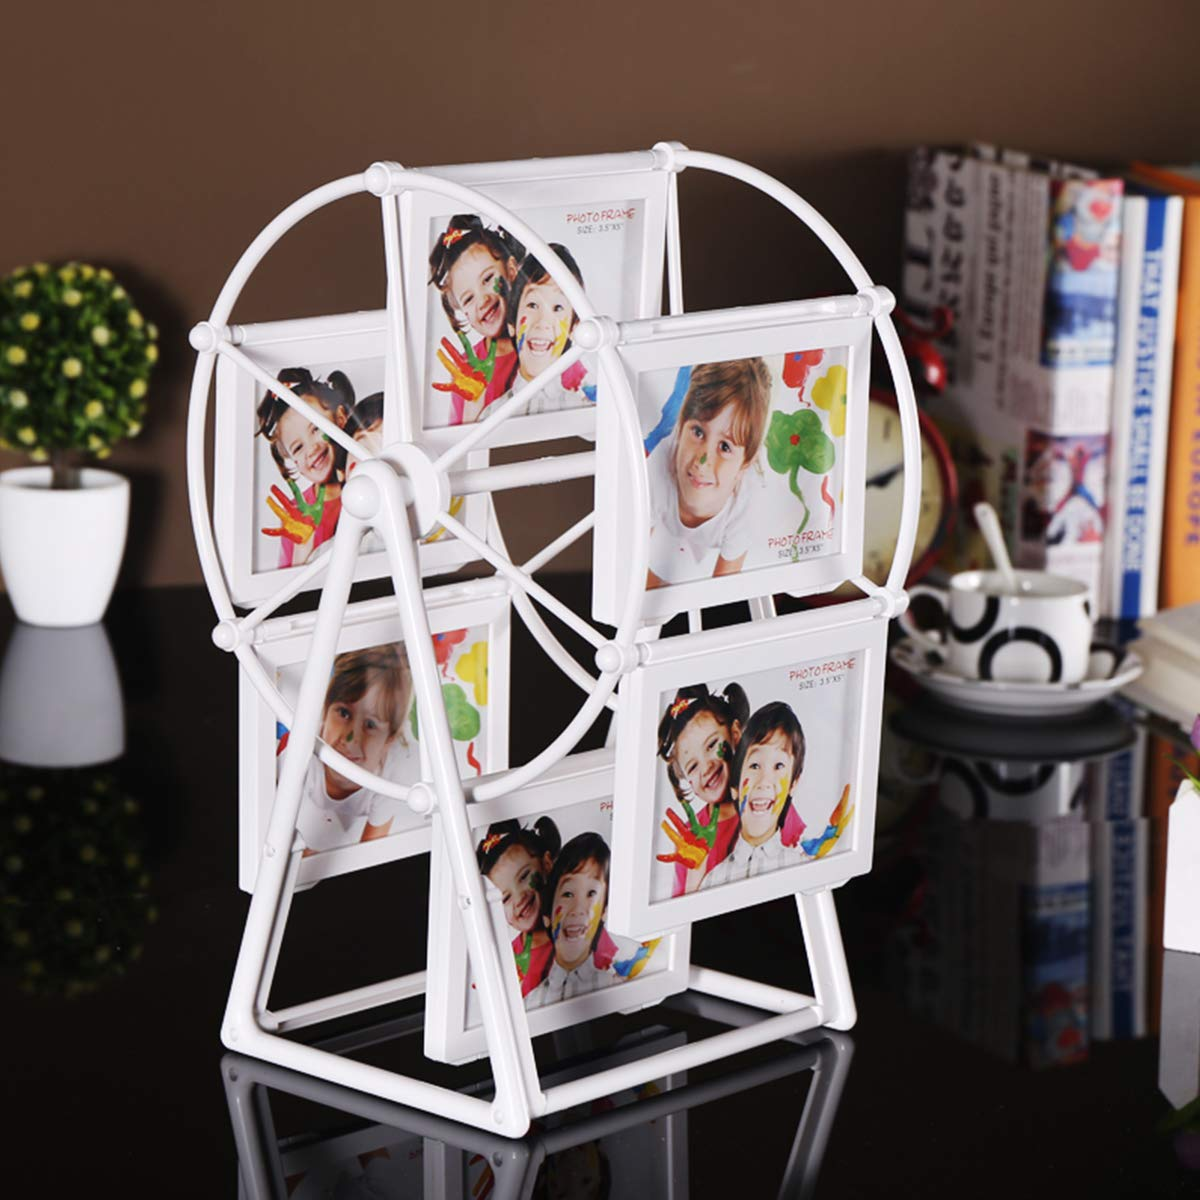 Baby Photo Frame for 12 Photos Shows for 5 inches Photographs Ferris Wheel Shape Picture Frame with Glass Front Fit for Stands Vertically on Desk Table Top White